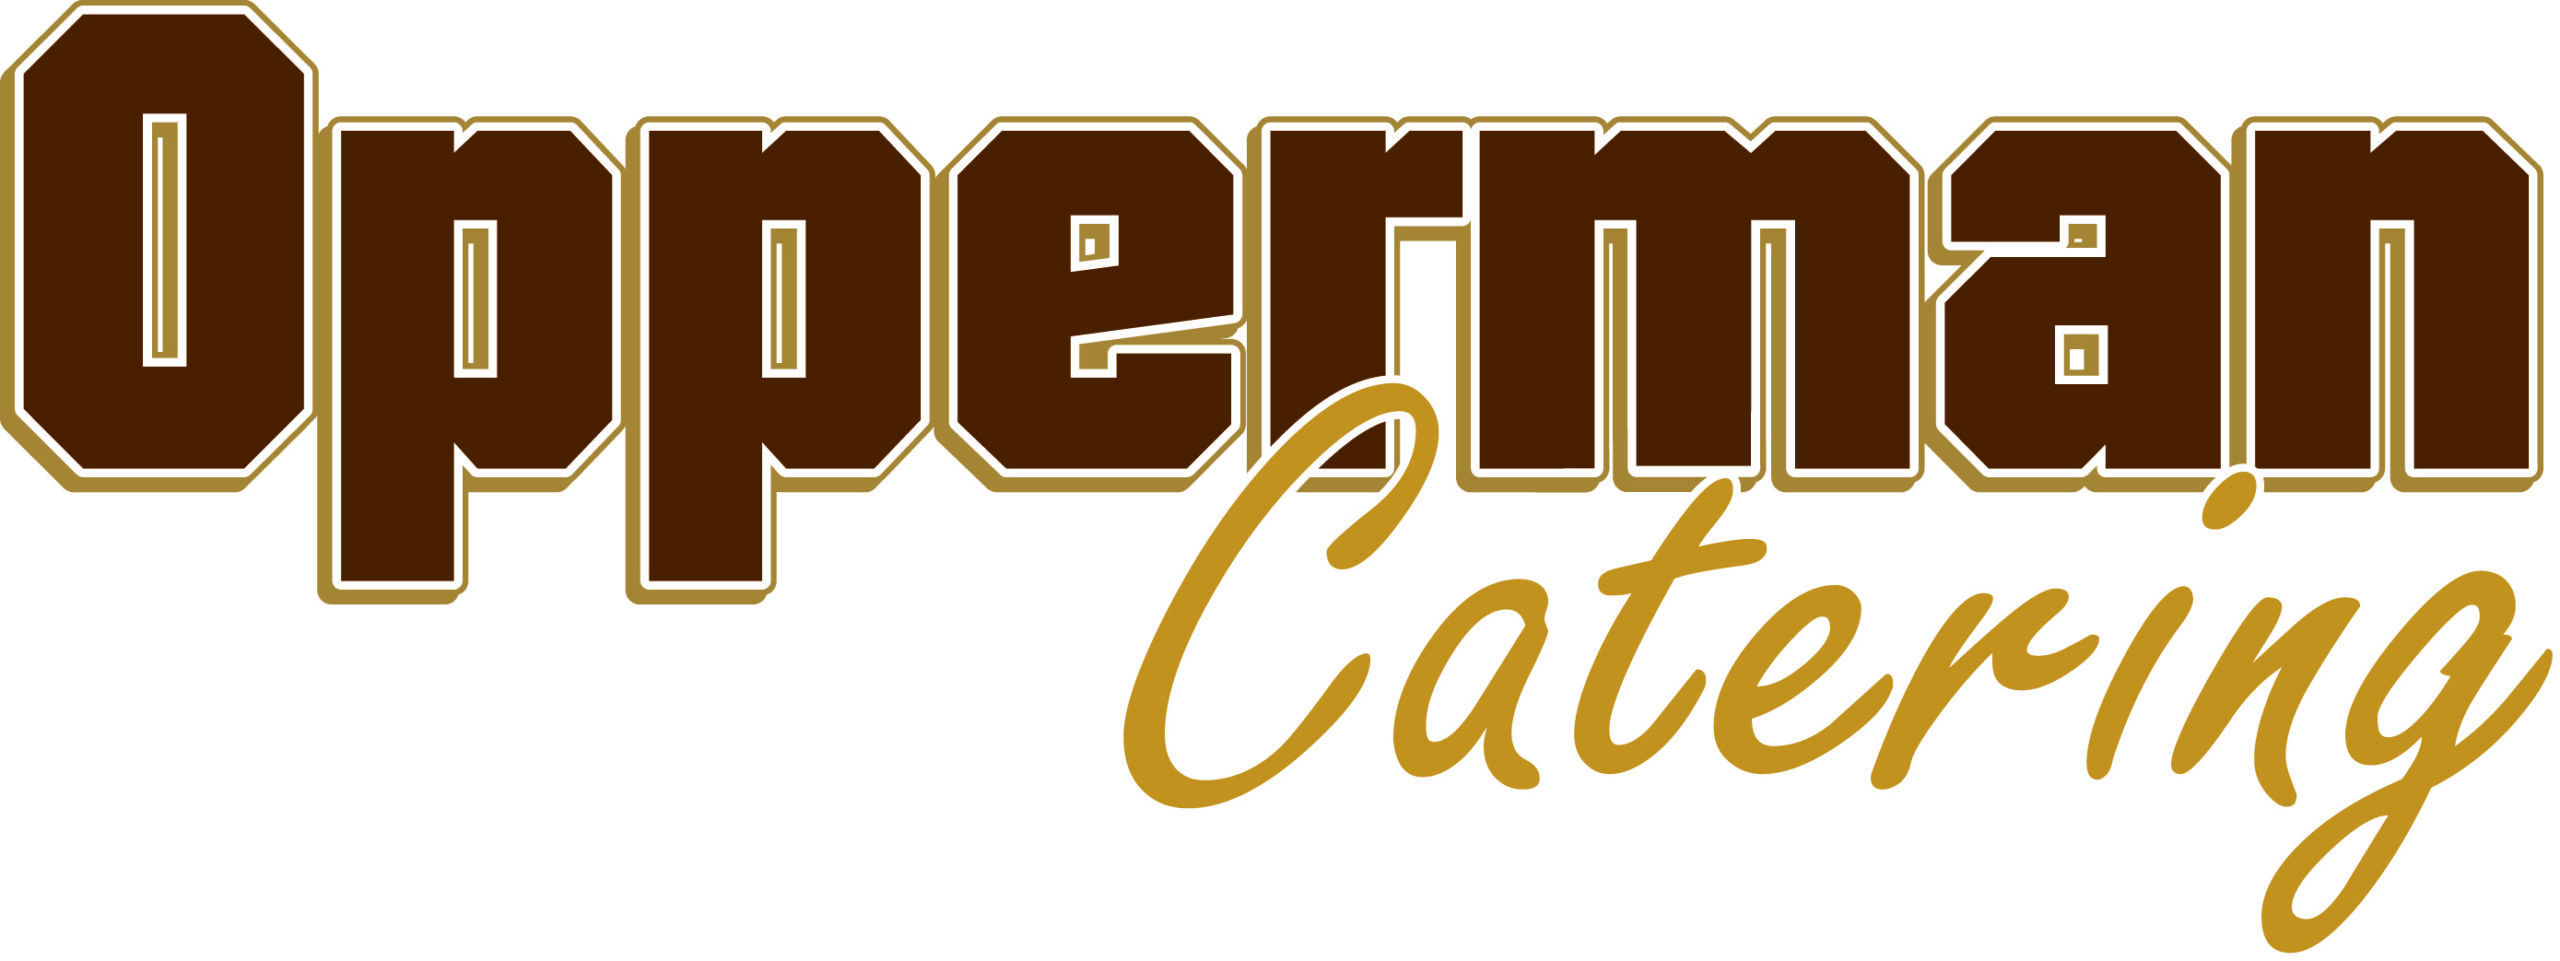 Opperman Catering